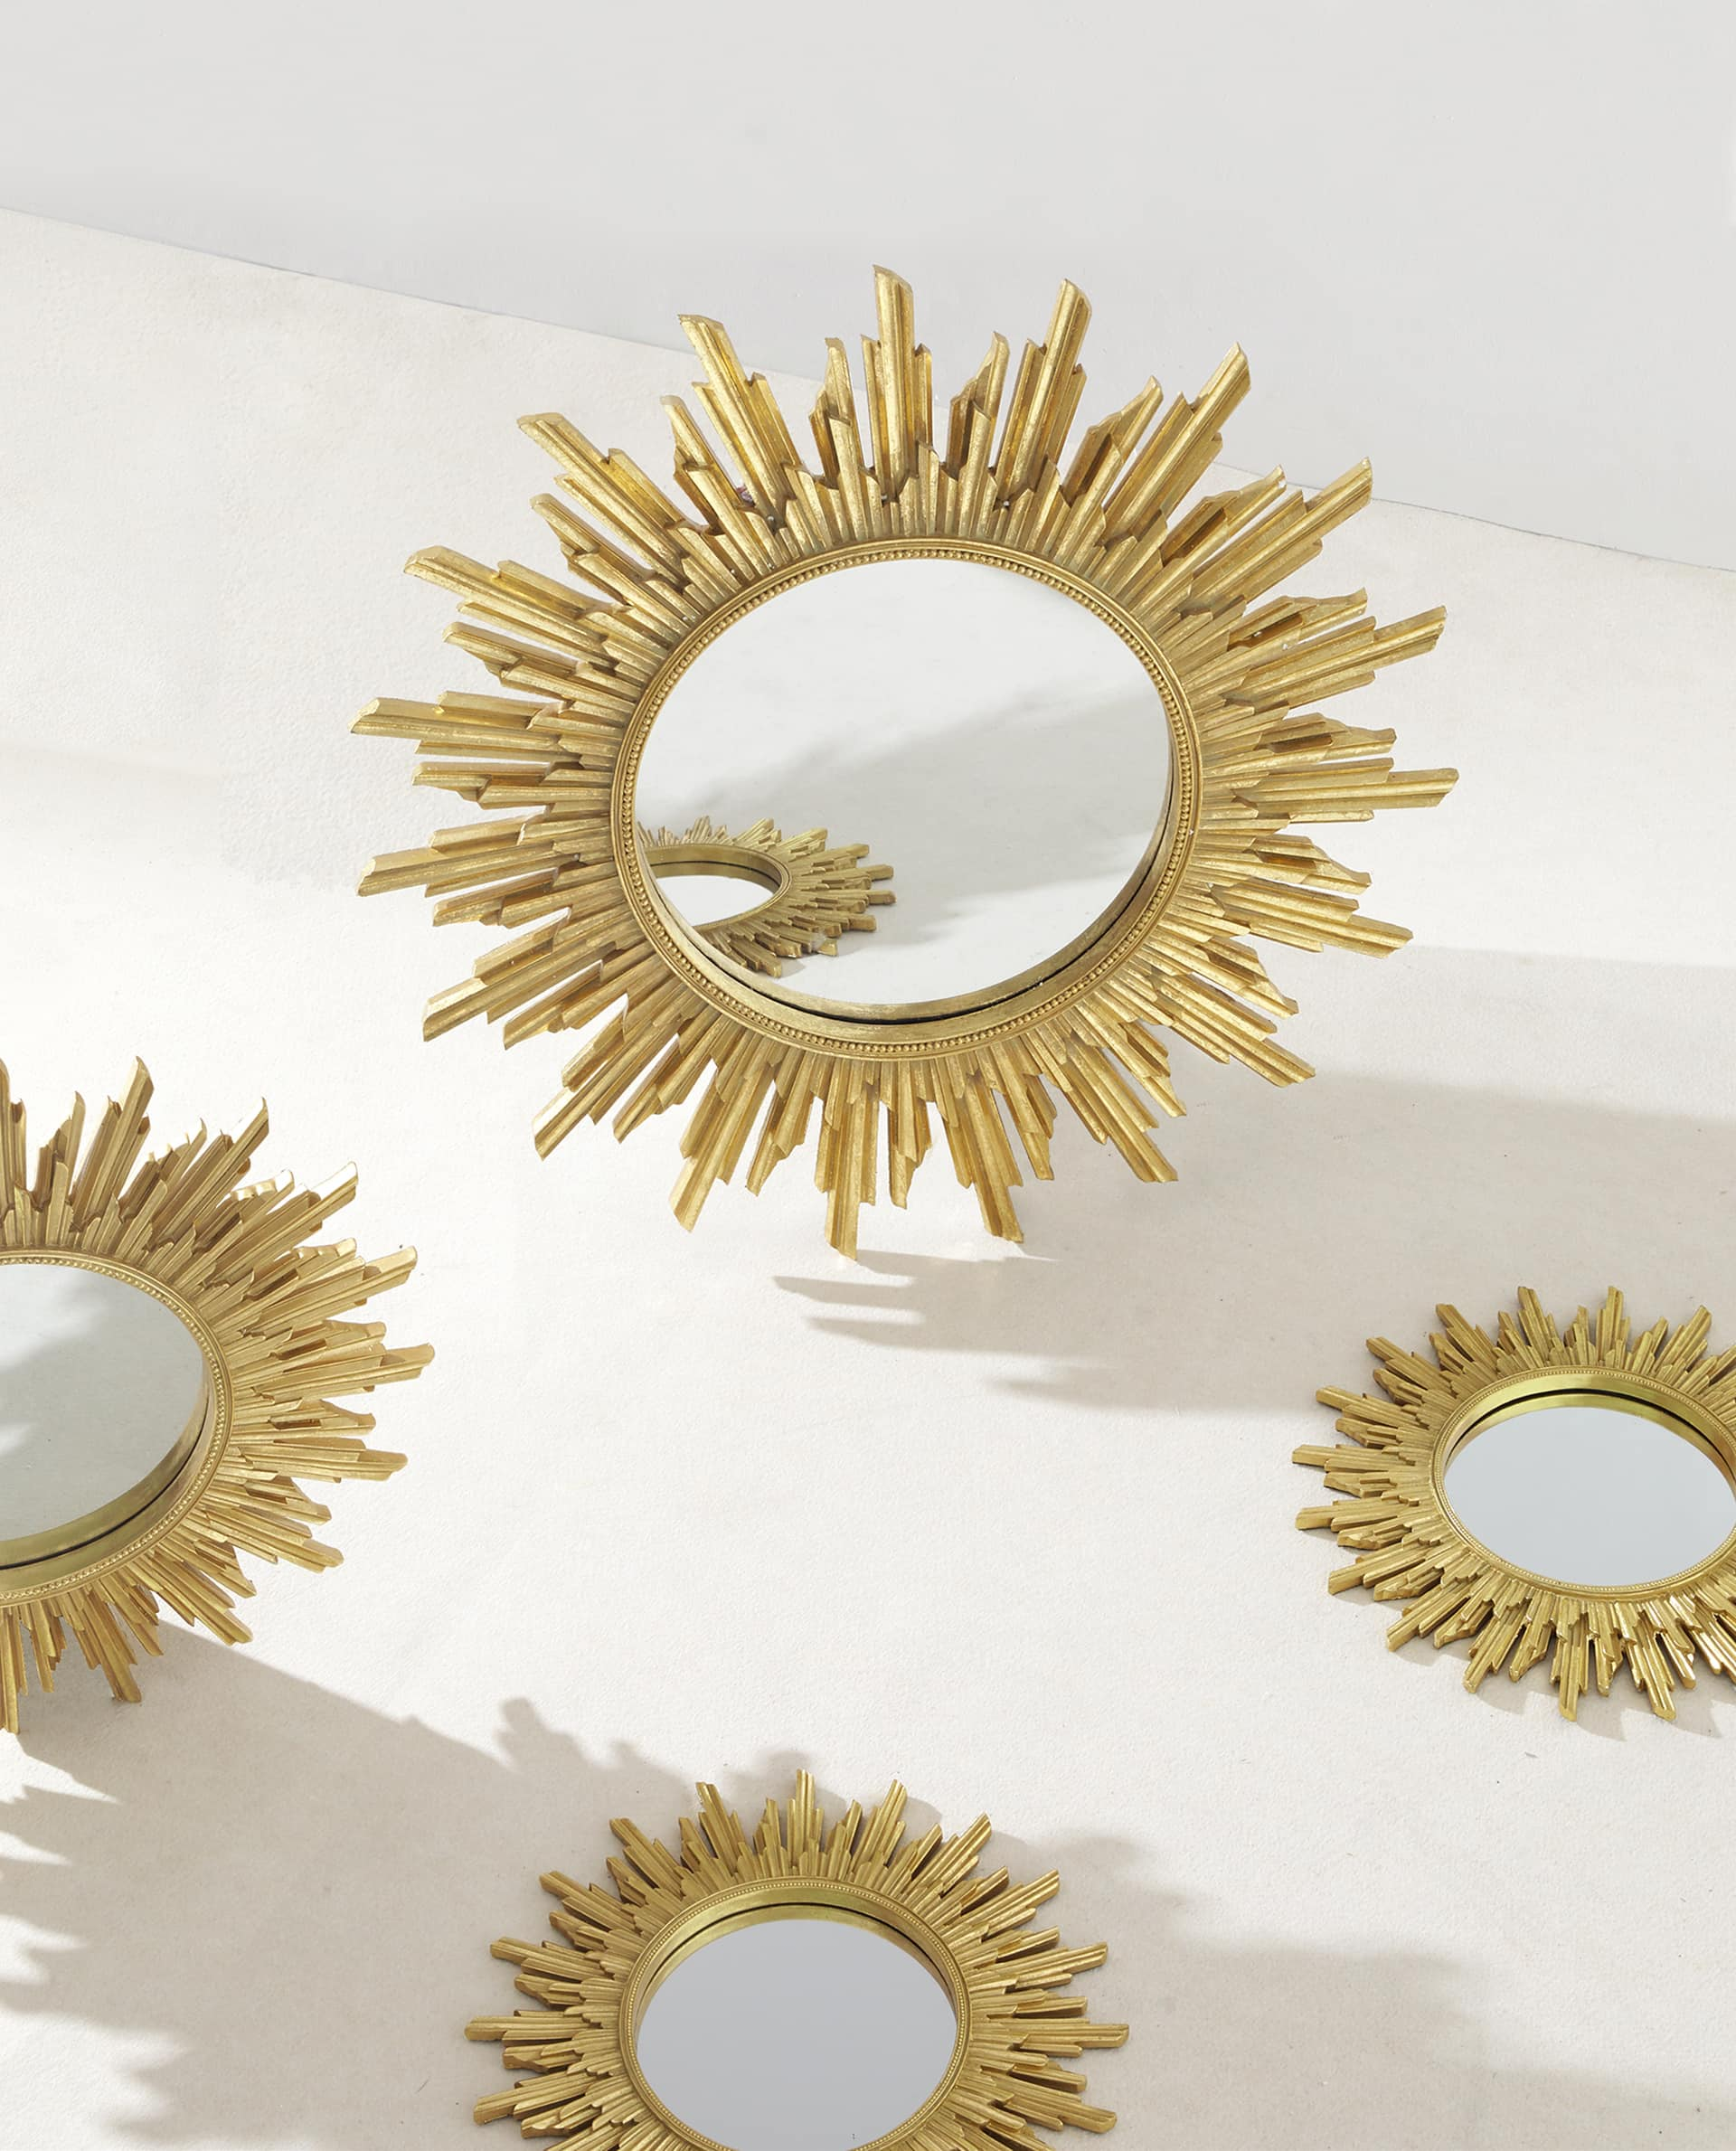 Sun Shaped Mirrors Flower Shaped Gold Mirror Gardening Flower And Vegetables